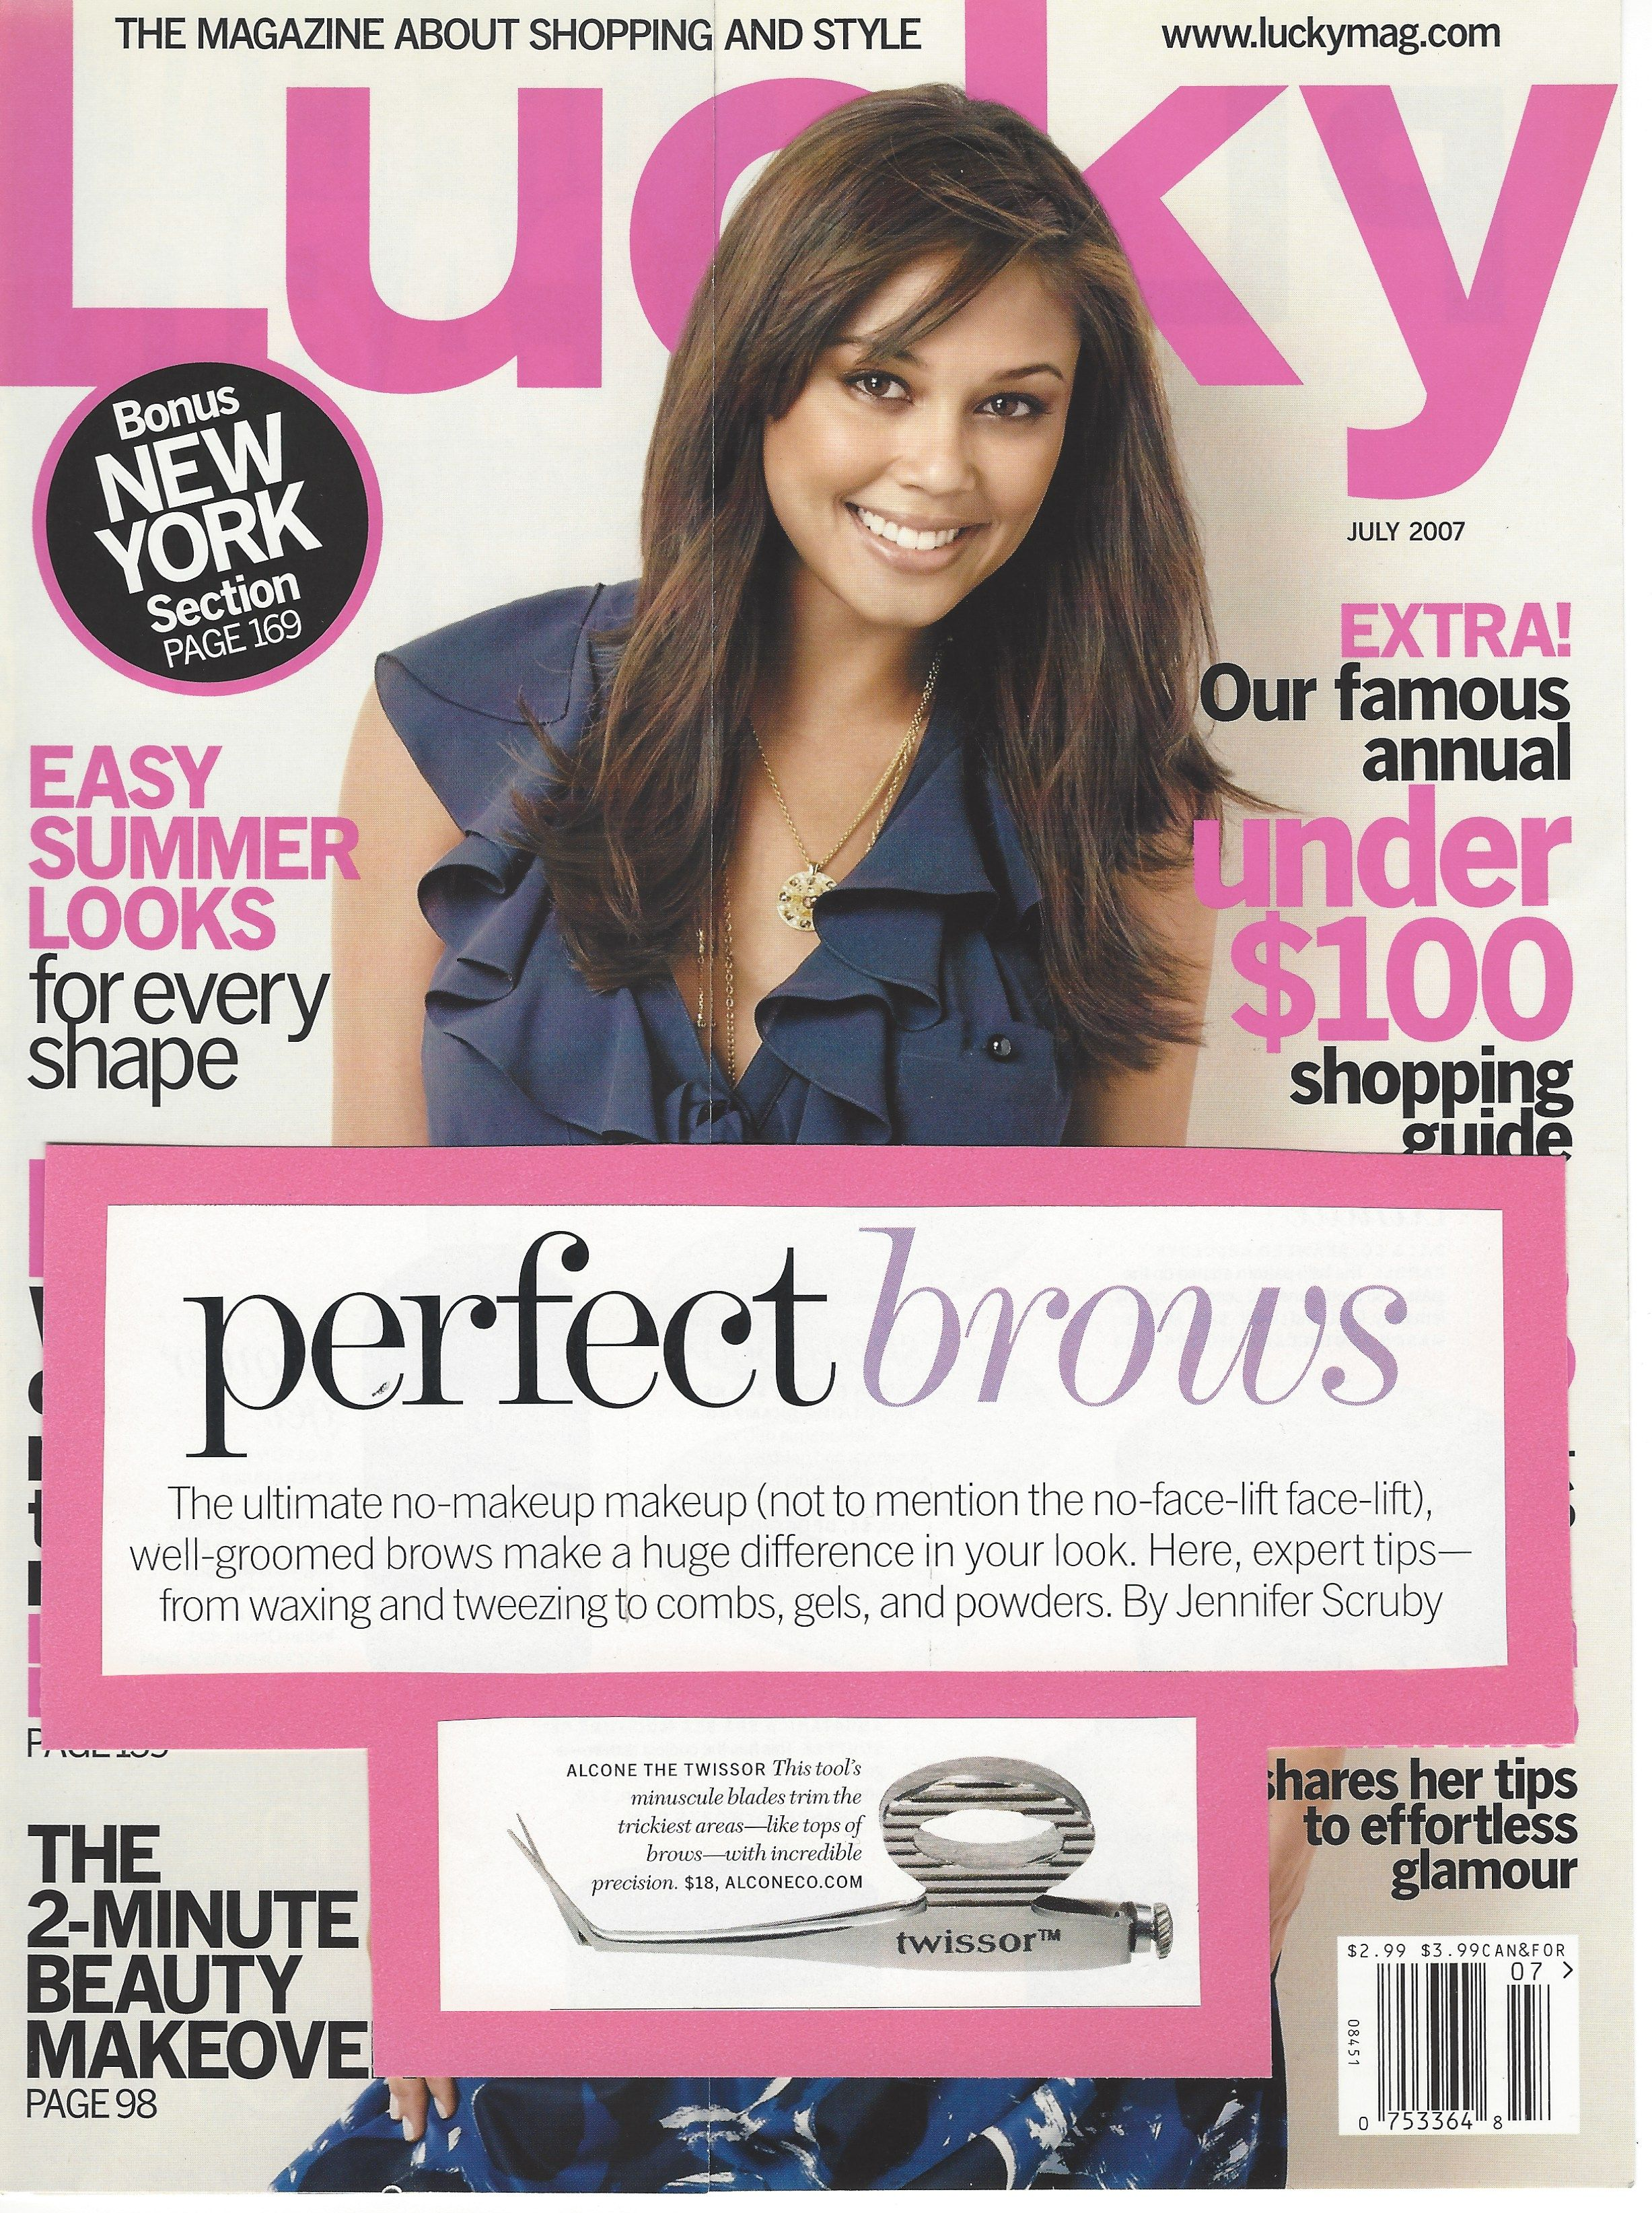 Lucky Magazine and Alcone Company Twissor Hair products